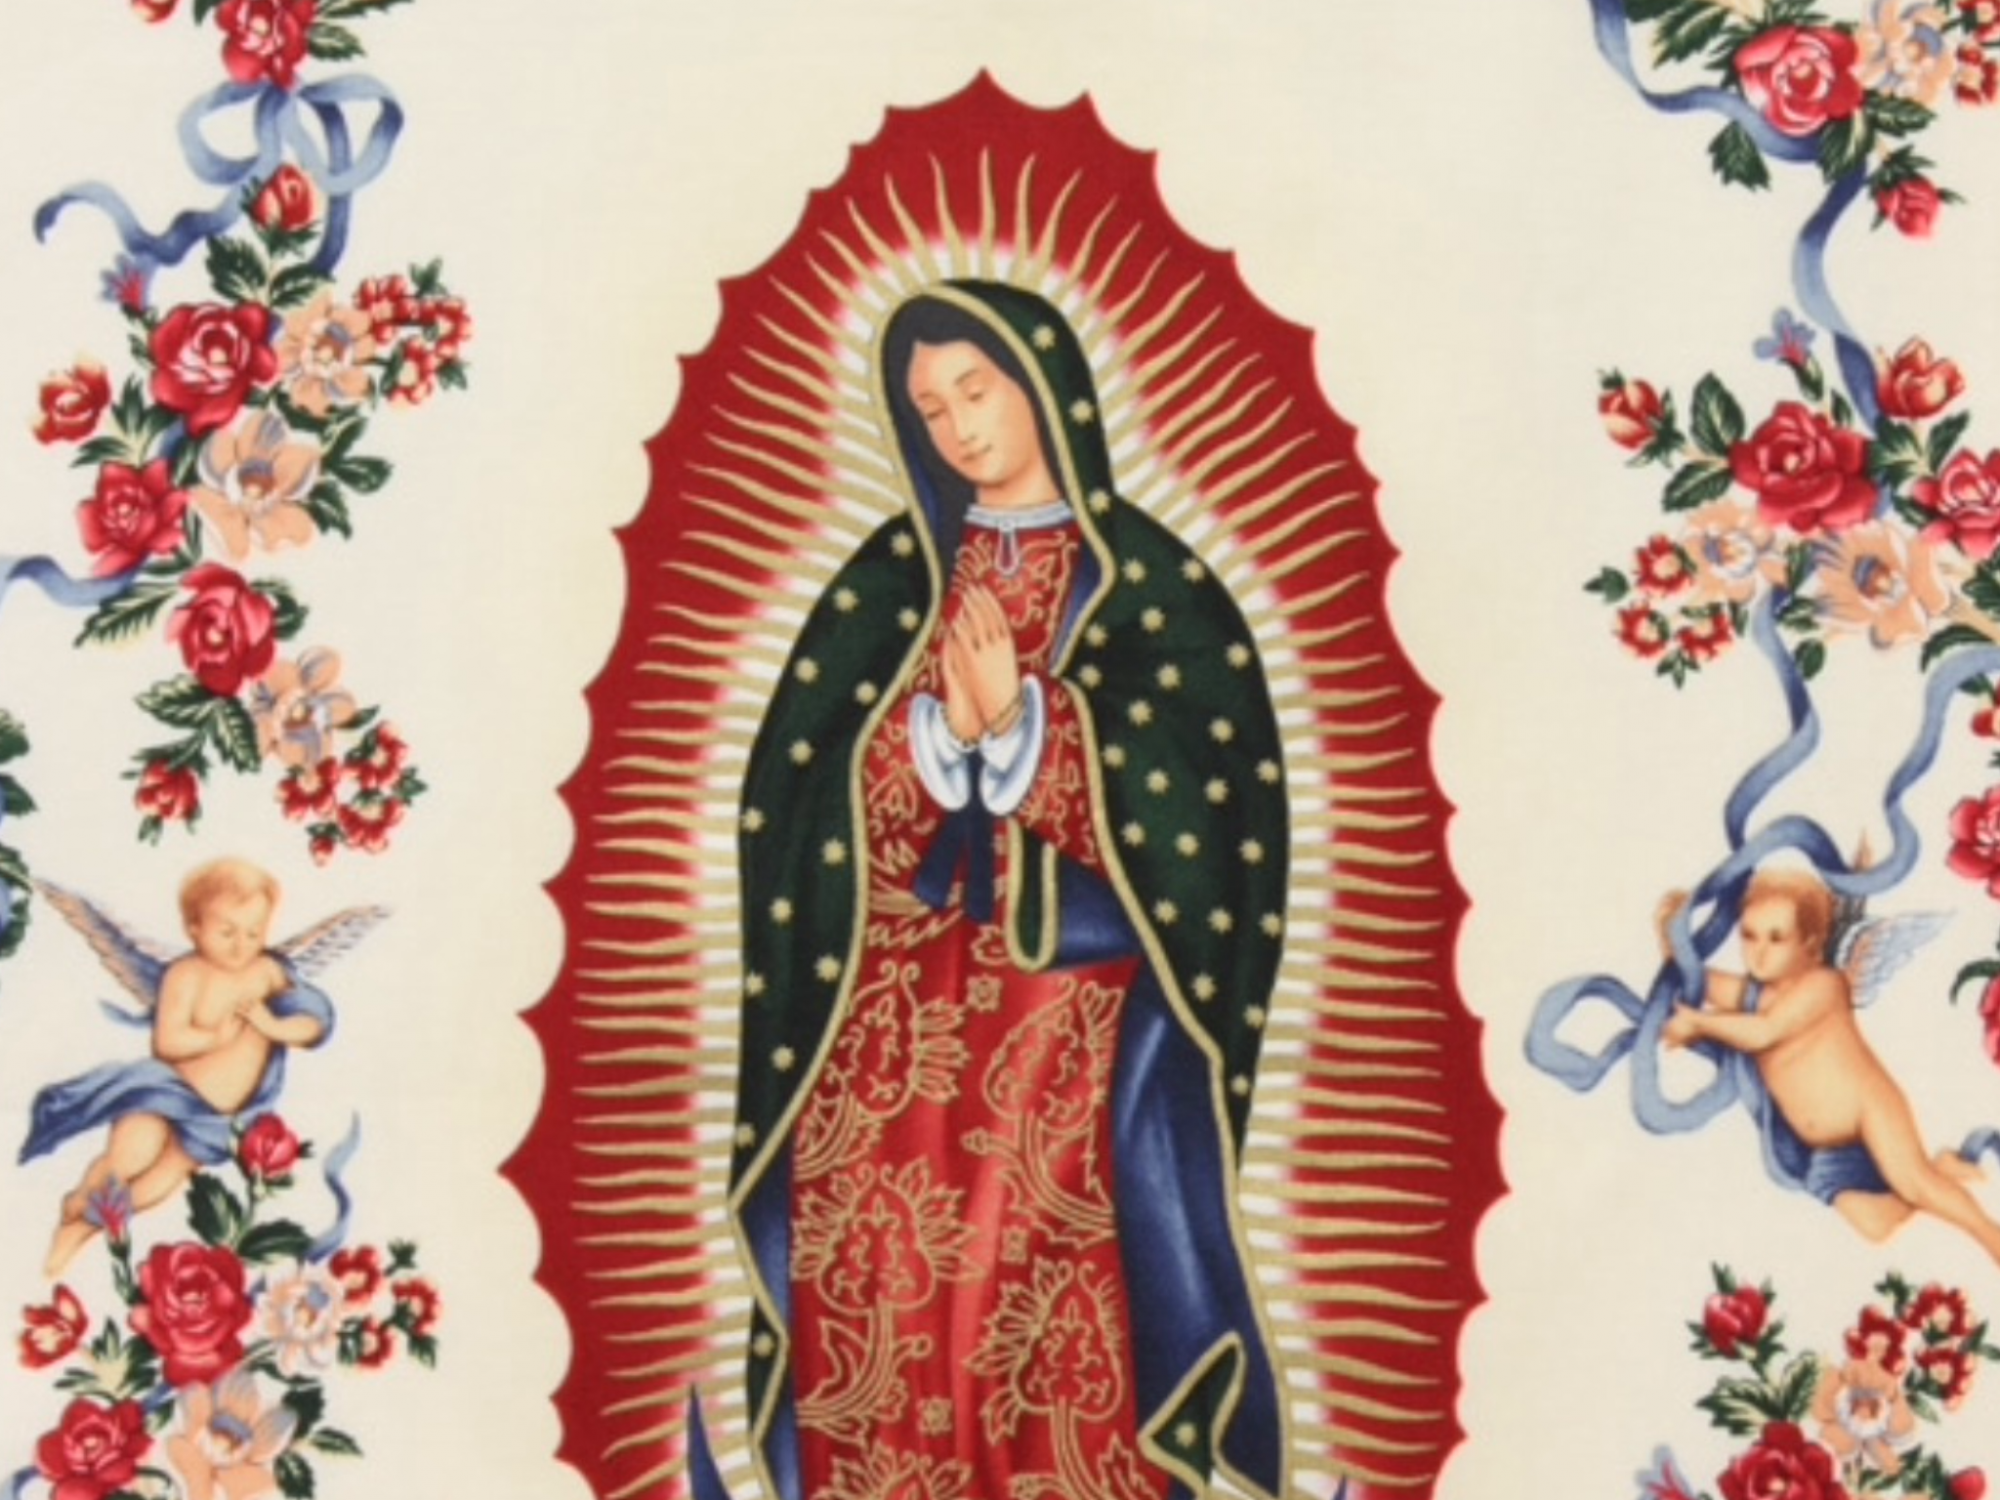 Our Lady Saint Mexico Virgin of Guadalupe Flowers Floral Cream background Cotton fabric Quilt fabric R251 / 619